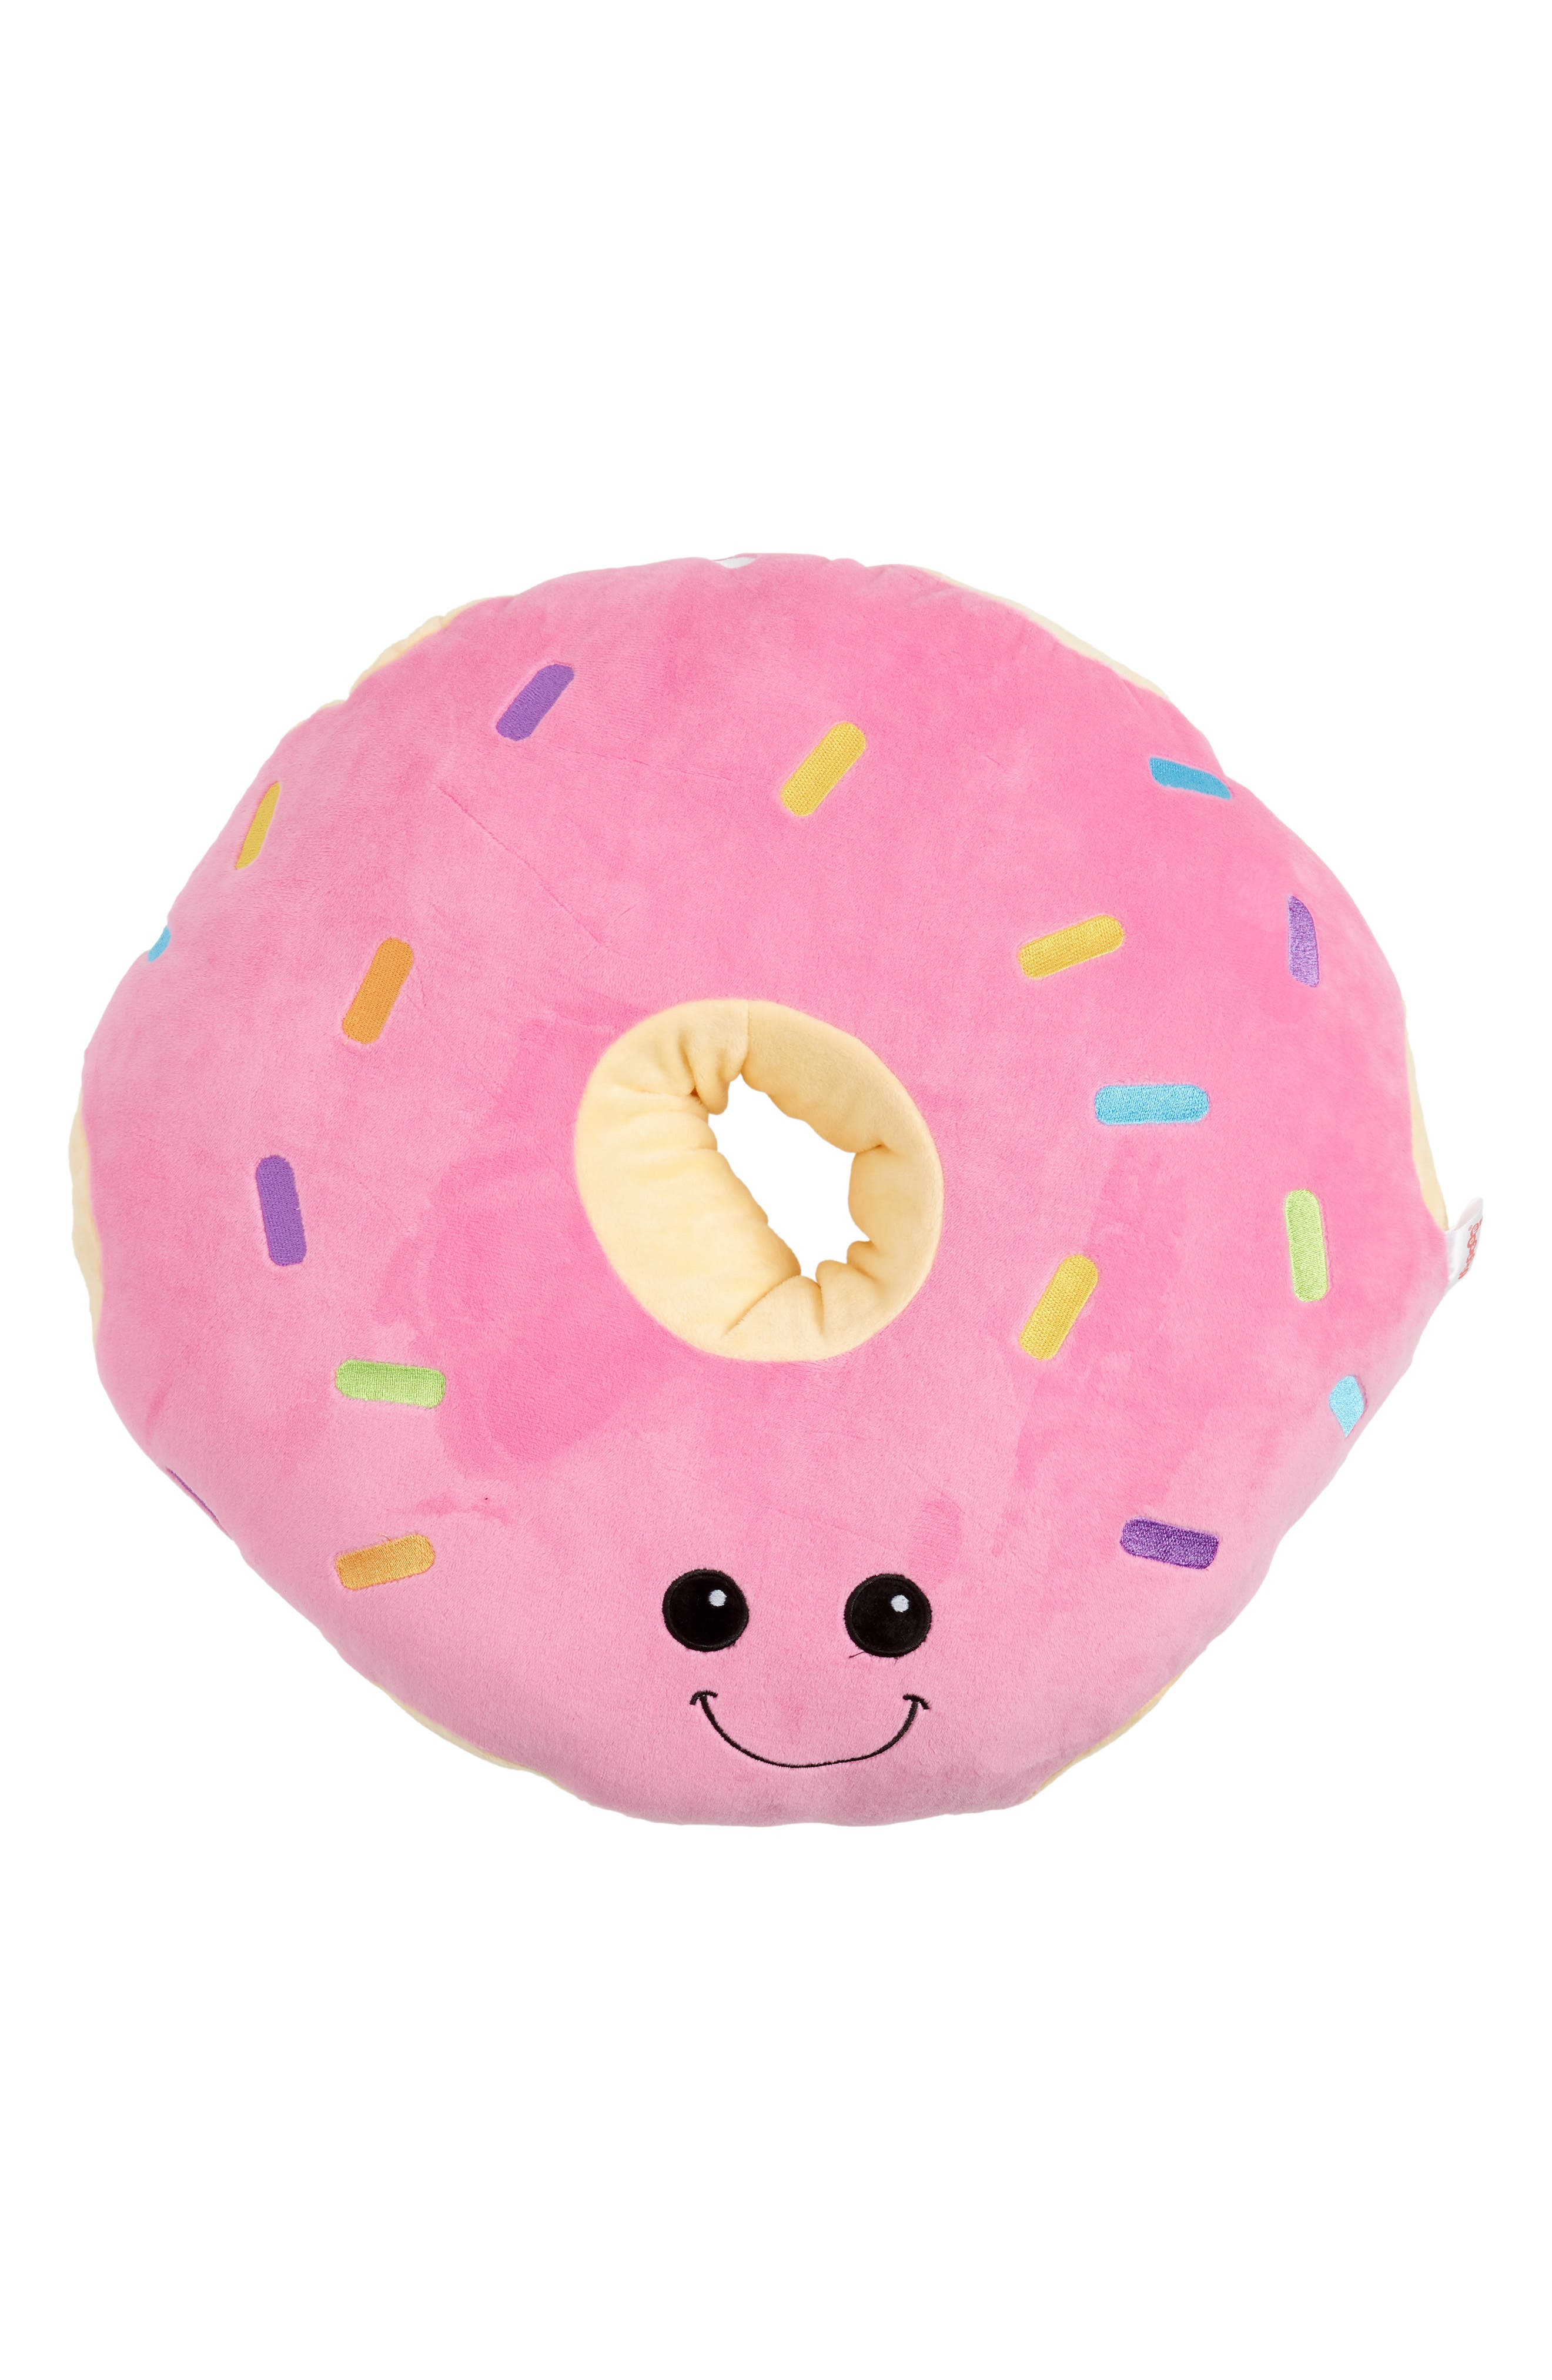 Scented Sprinkle Donut Pillow,                             Main thumbnail 1, color,                             652